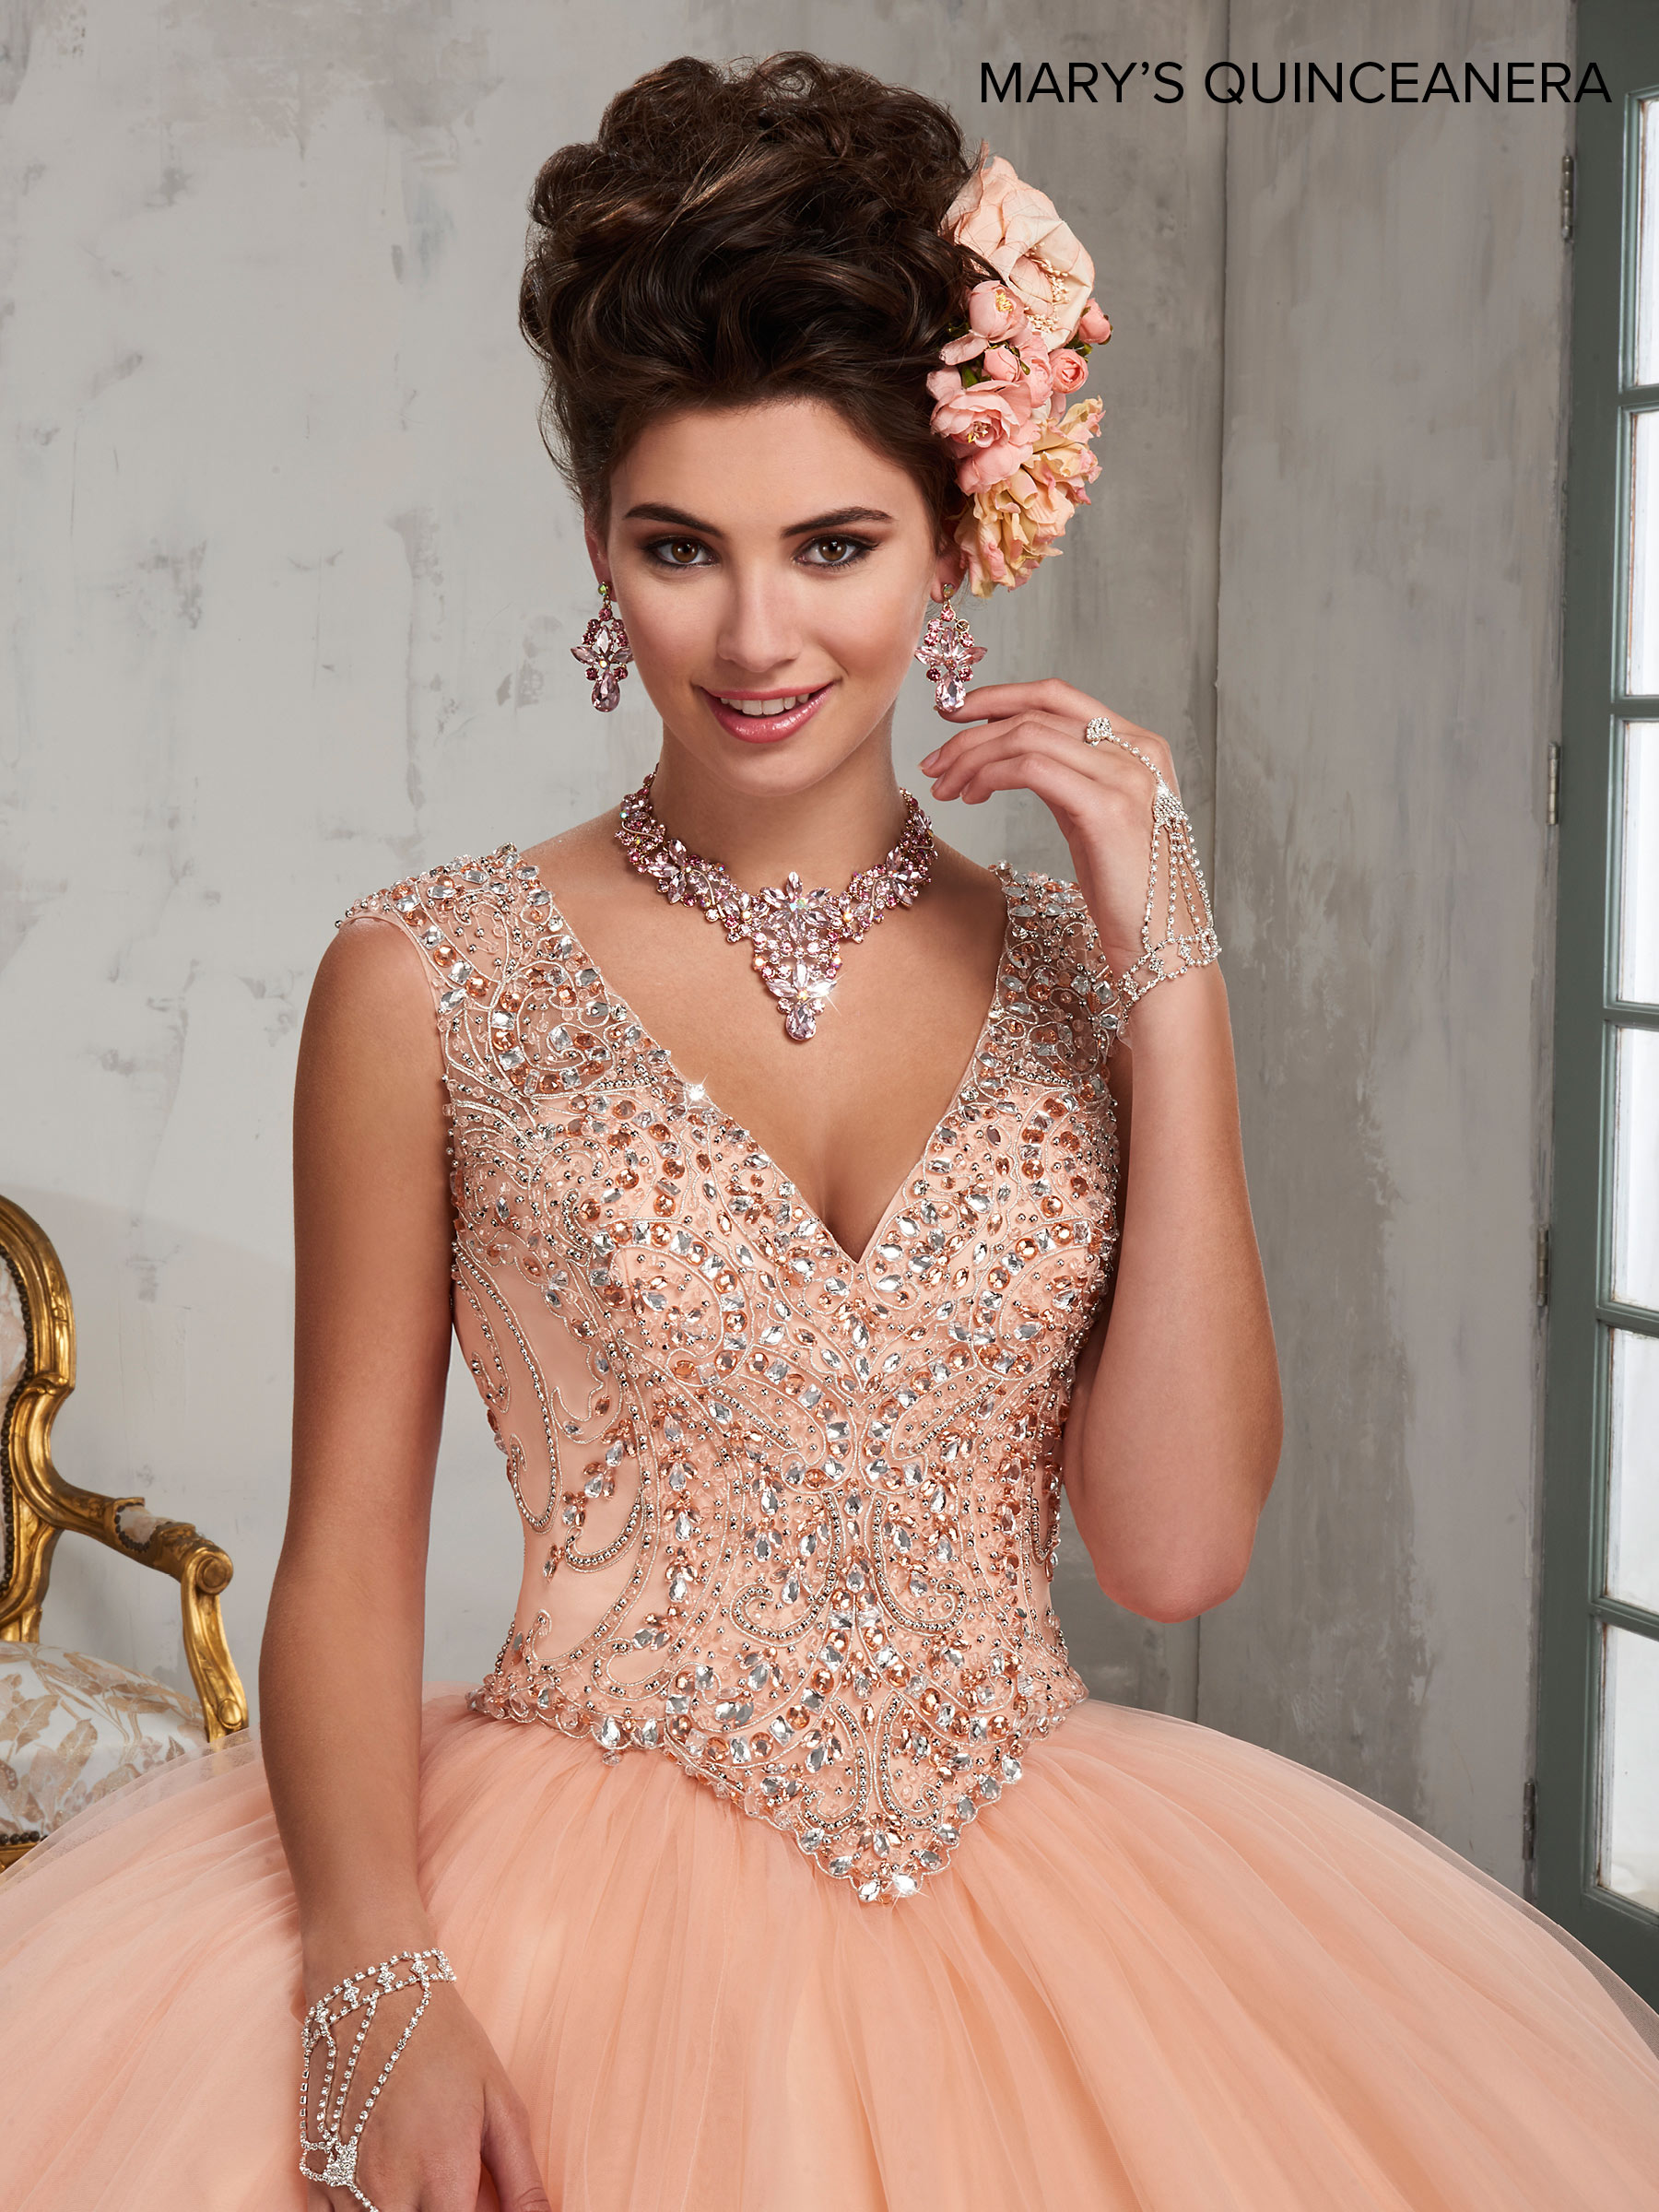 Marys Quinceanera Dresses | Mary's Quinceanera | Style - MQ2016